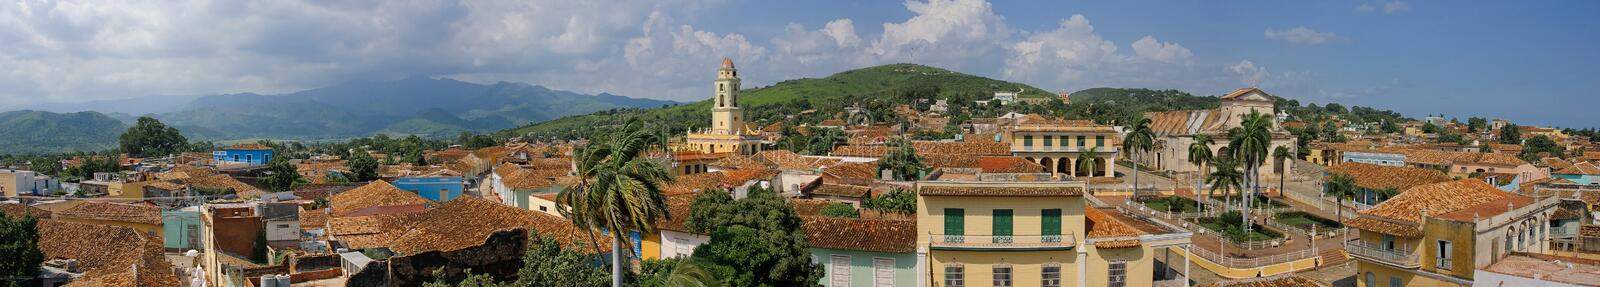 Panoramic view of Trinidad city seen from the the City Museum tower royalty free stock photography